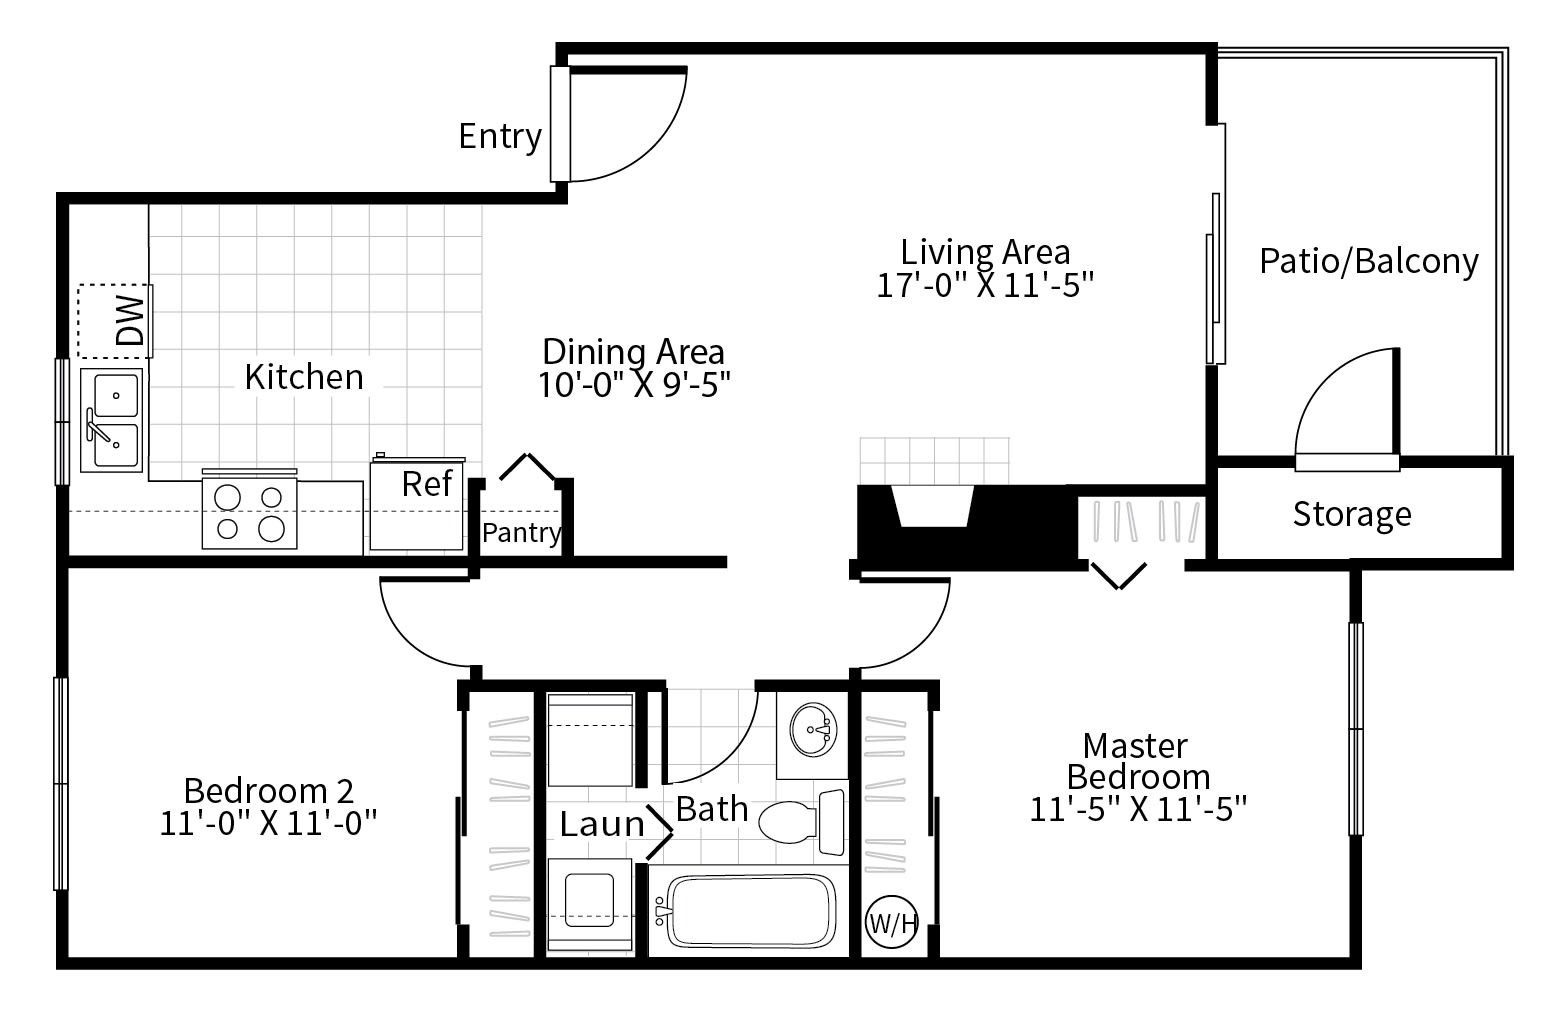 Floor Plan  2 bedroom 1 bathroom floor plan at Grammercy apartments in Renton, Washington., opens a dialog